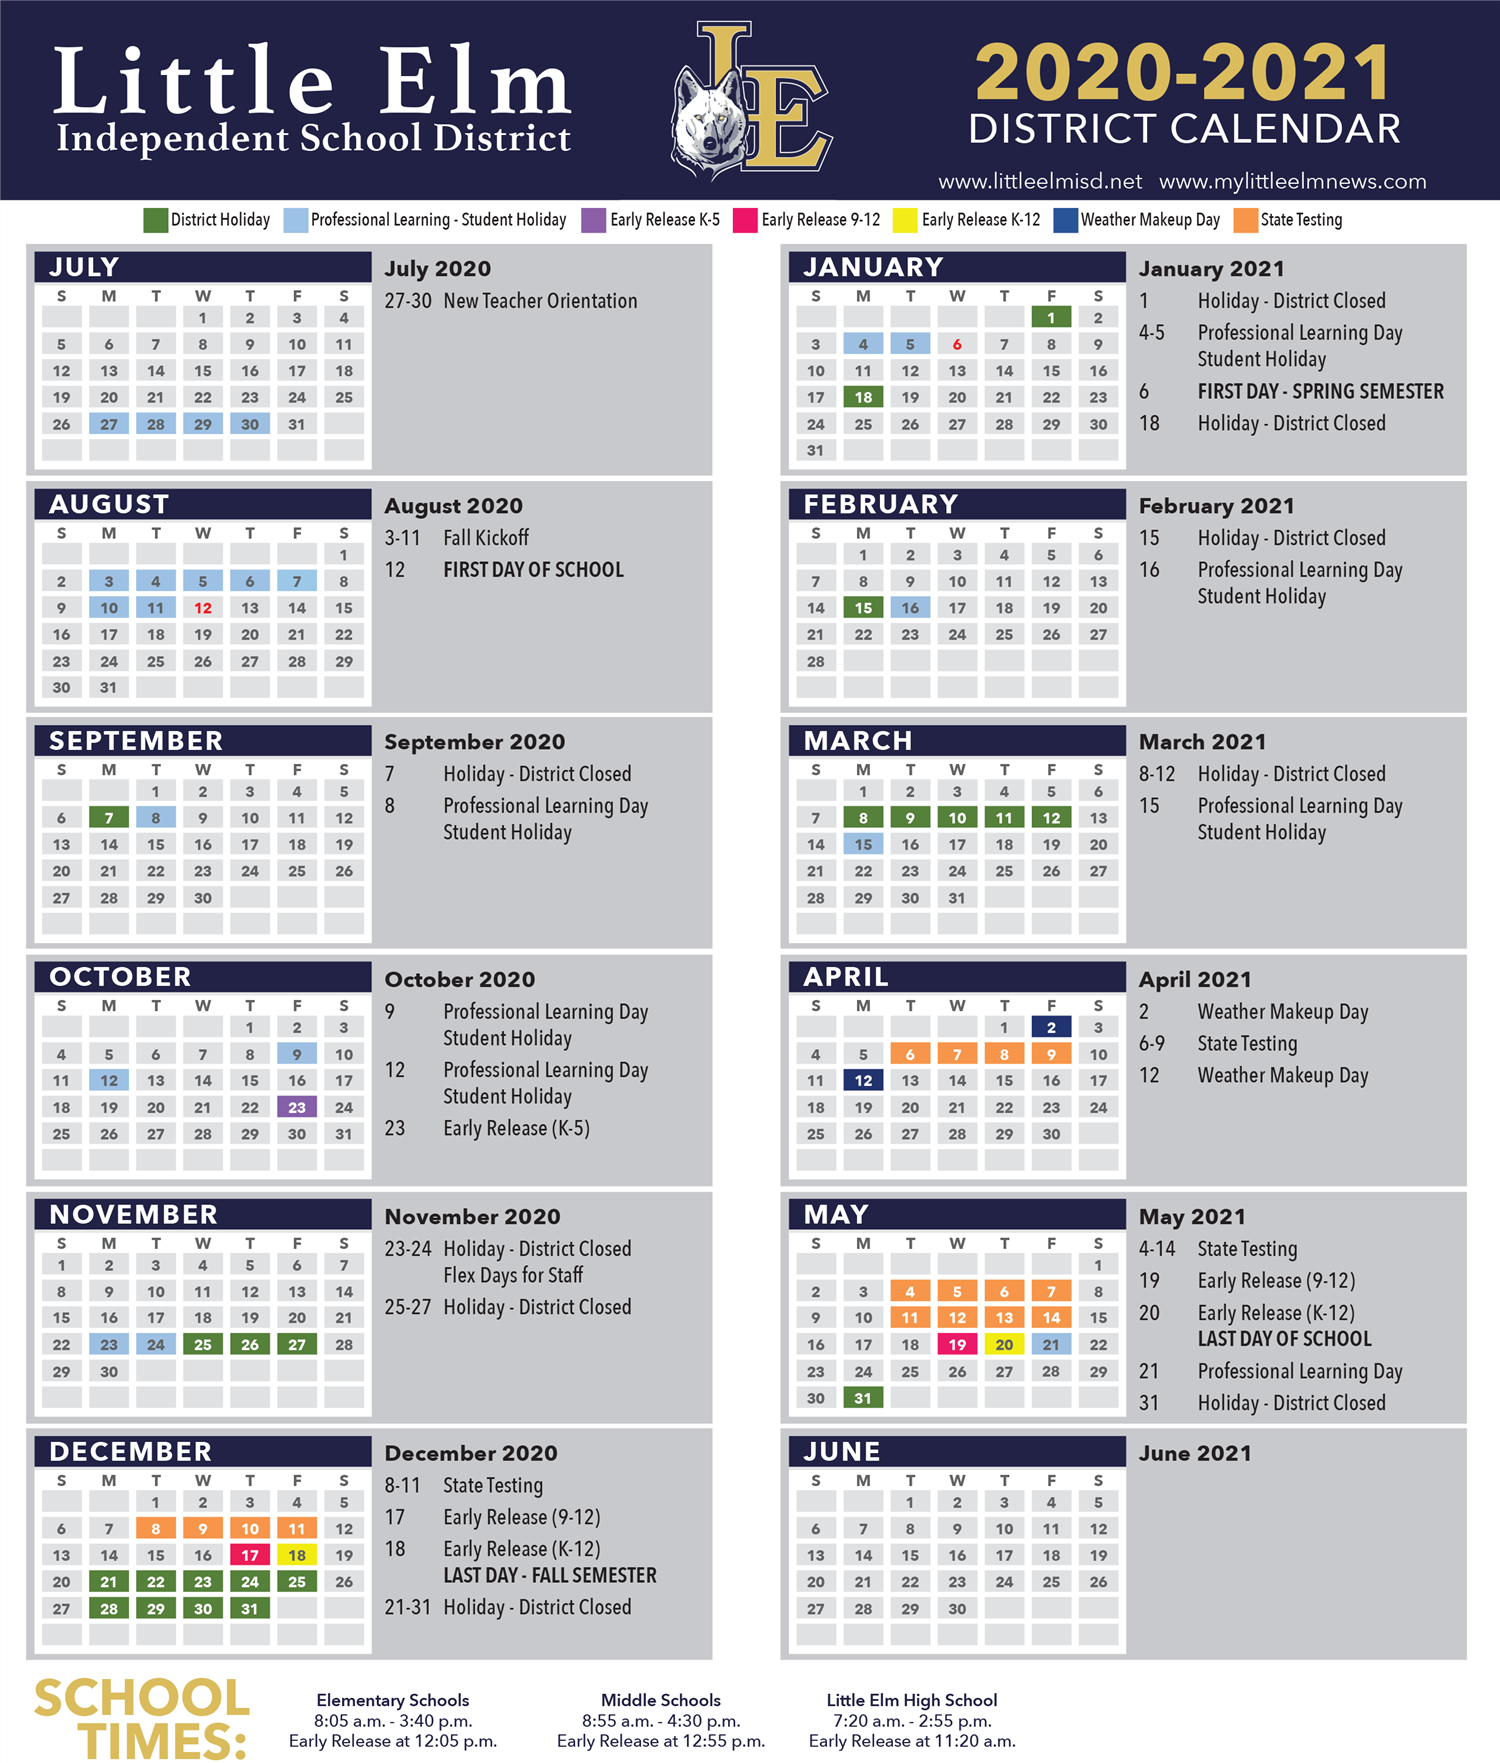 2020-2021 District Calendar - Click to print.